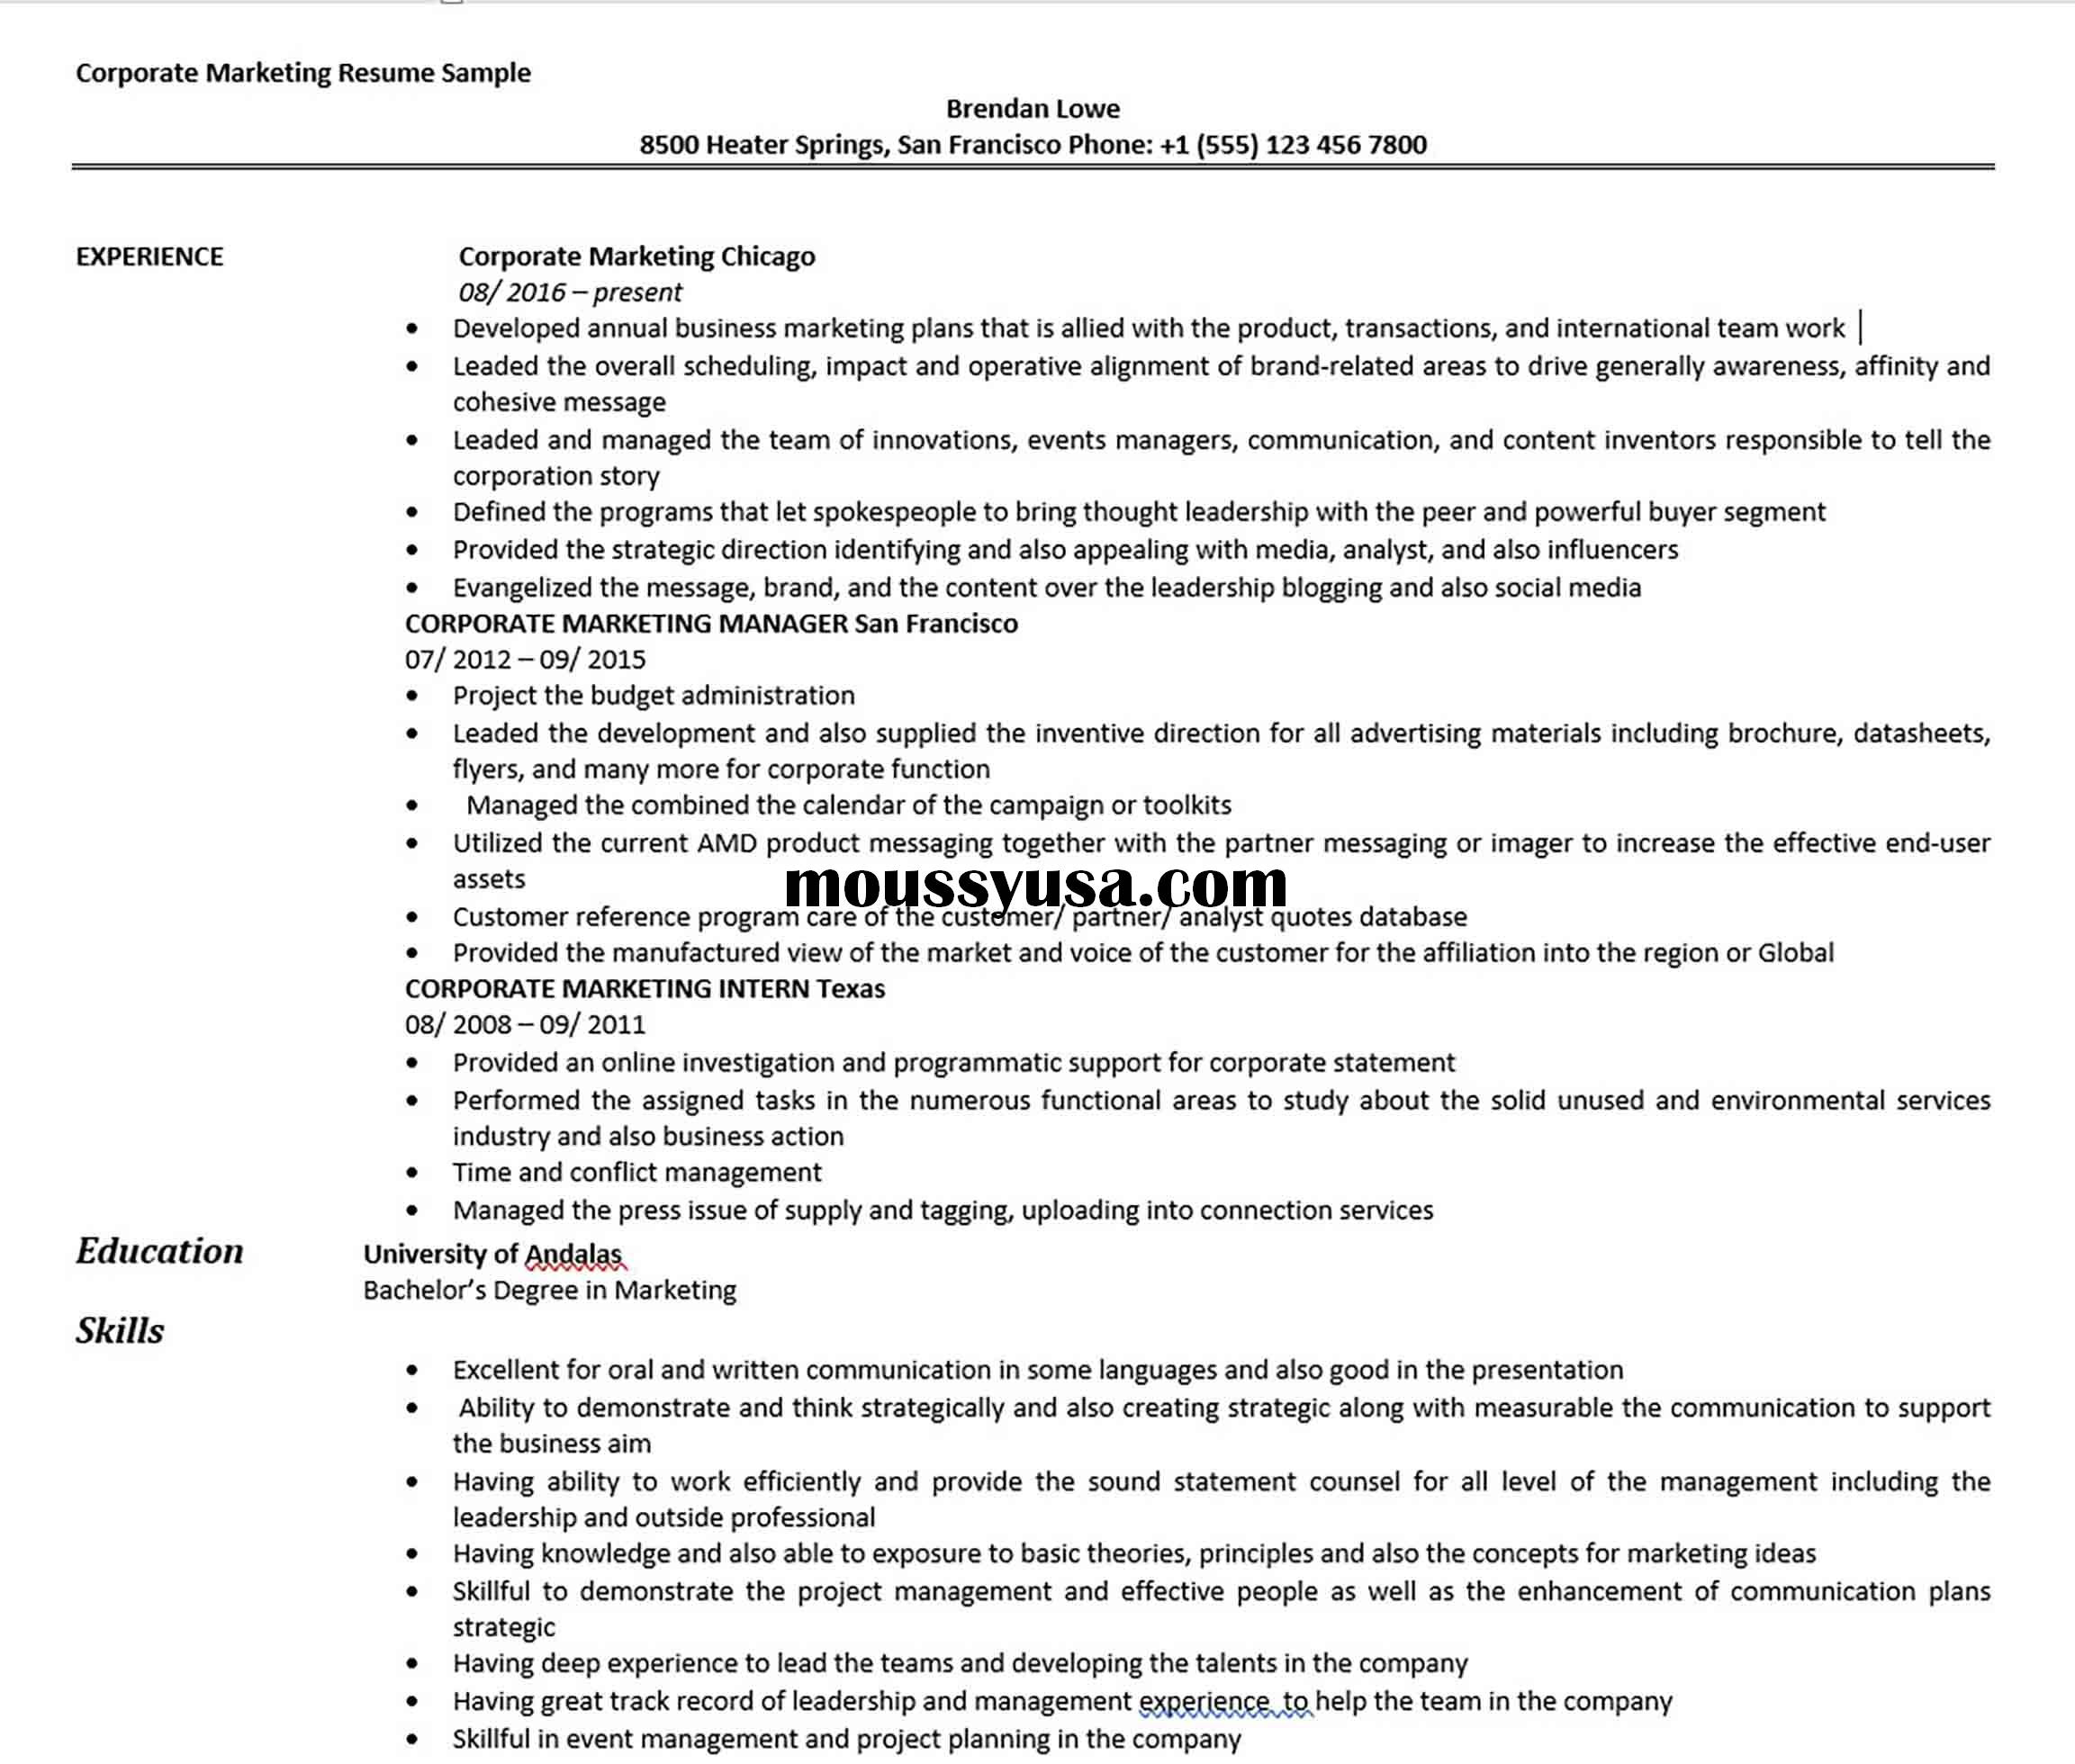 Corporate Marketing Resume Sample